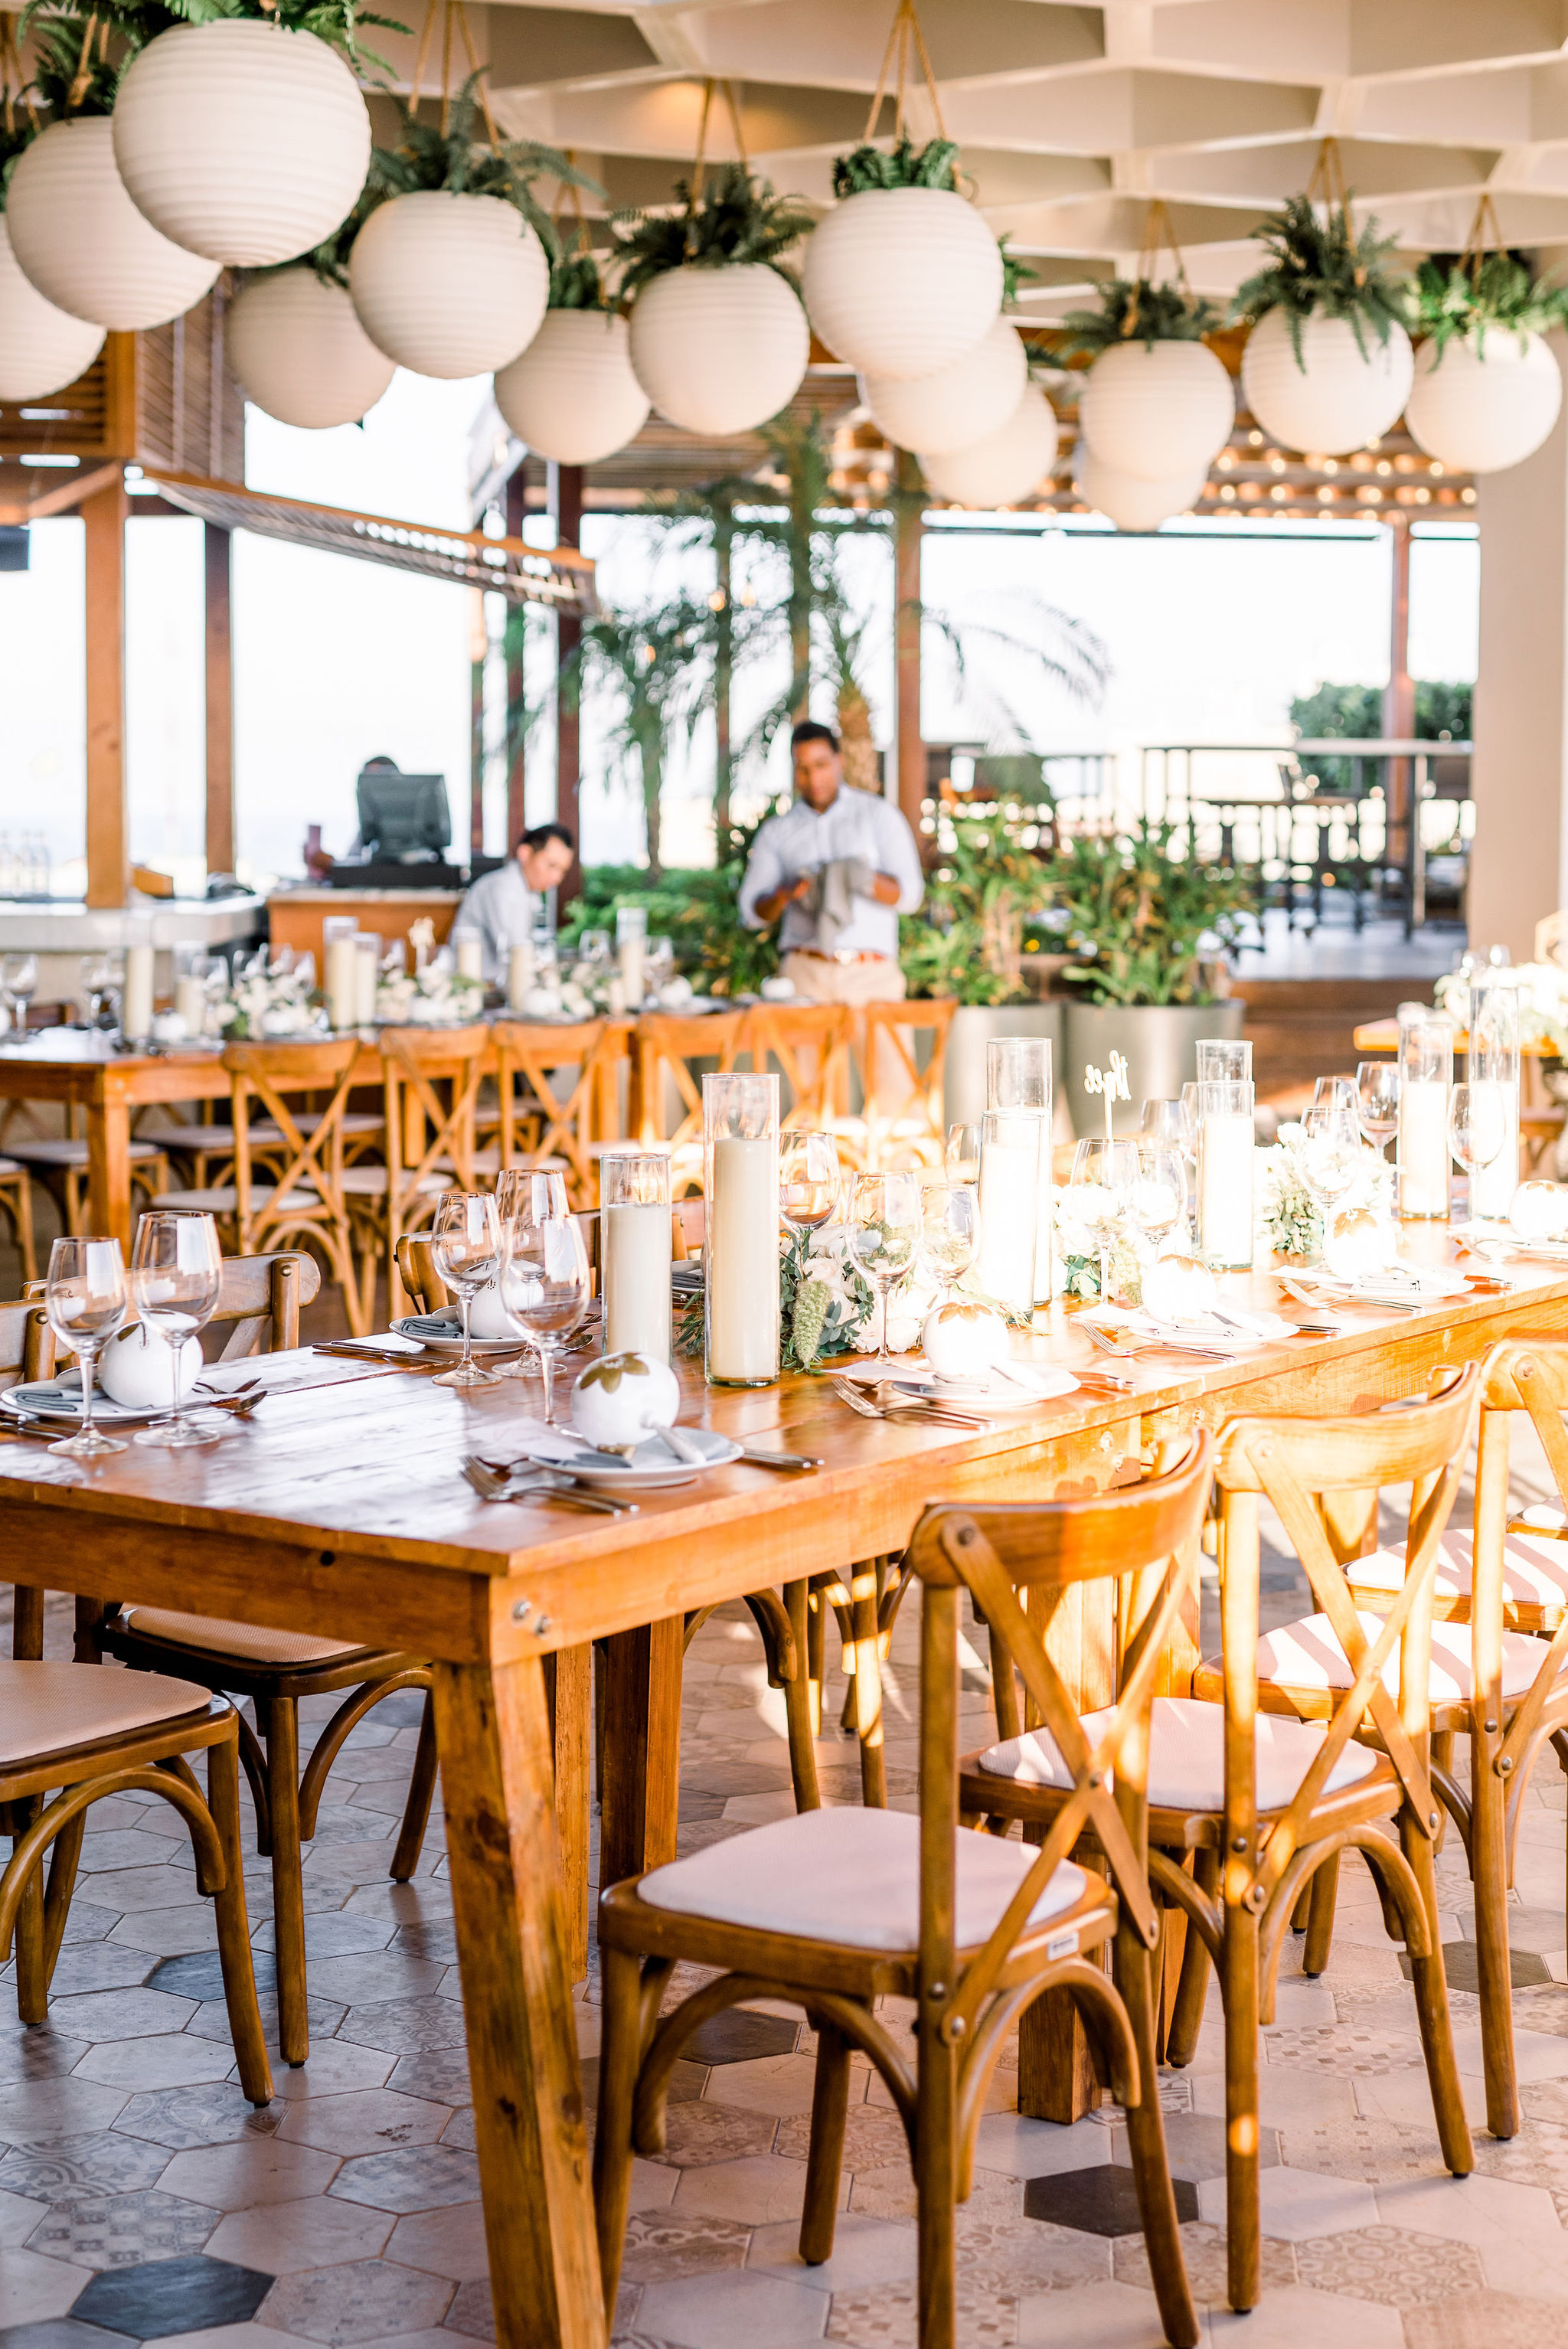 About Luma Vera - Here at Luma Vera, our focus is to make a beautiful film with careful attention to detail.We love to document just about everything & we love even more to create stylized montages that are tailored made for you. Luma Vera gladly shoots for all occasions or events, no matter how big or small.Our speciality is making enticing destination films for life style shoots or marriages. We love to travel and would be more than happy to follow you to your location - anywhere in the world!Our wedding videos are charming & delicately shot - combined with compelling music & touching speeches from the days events.